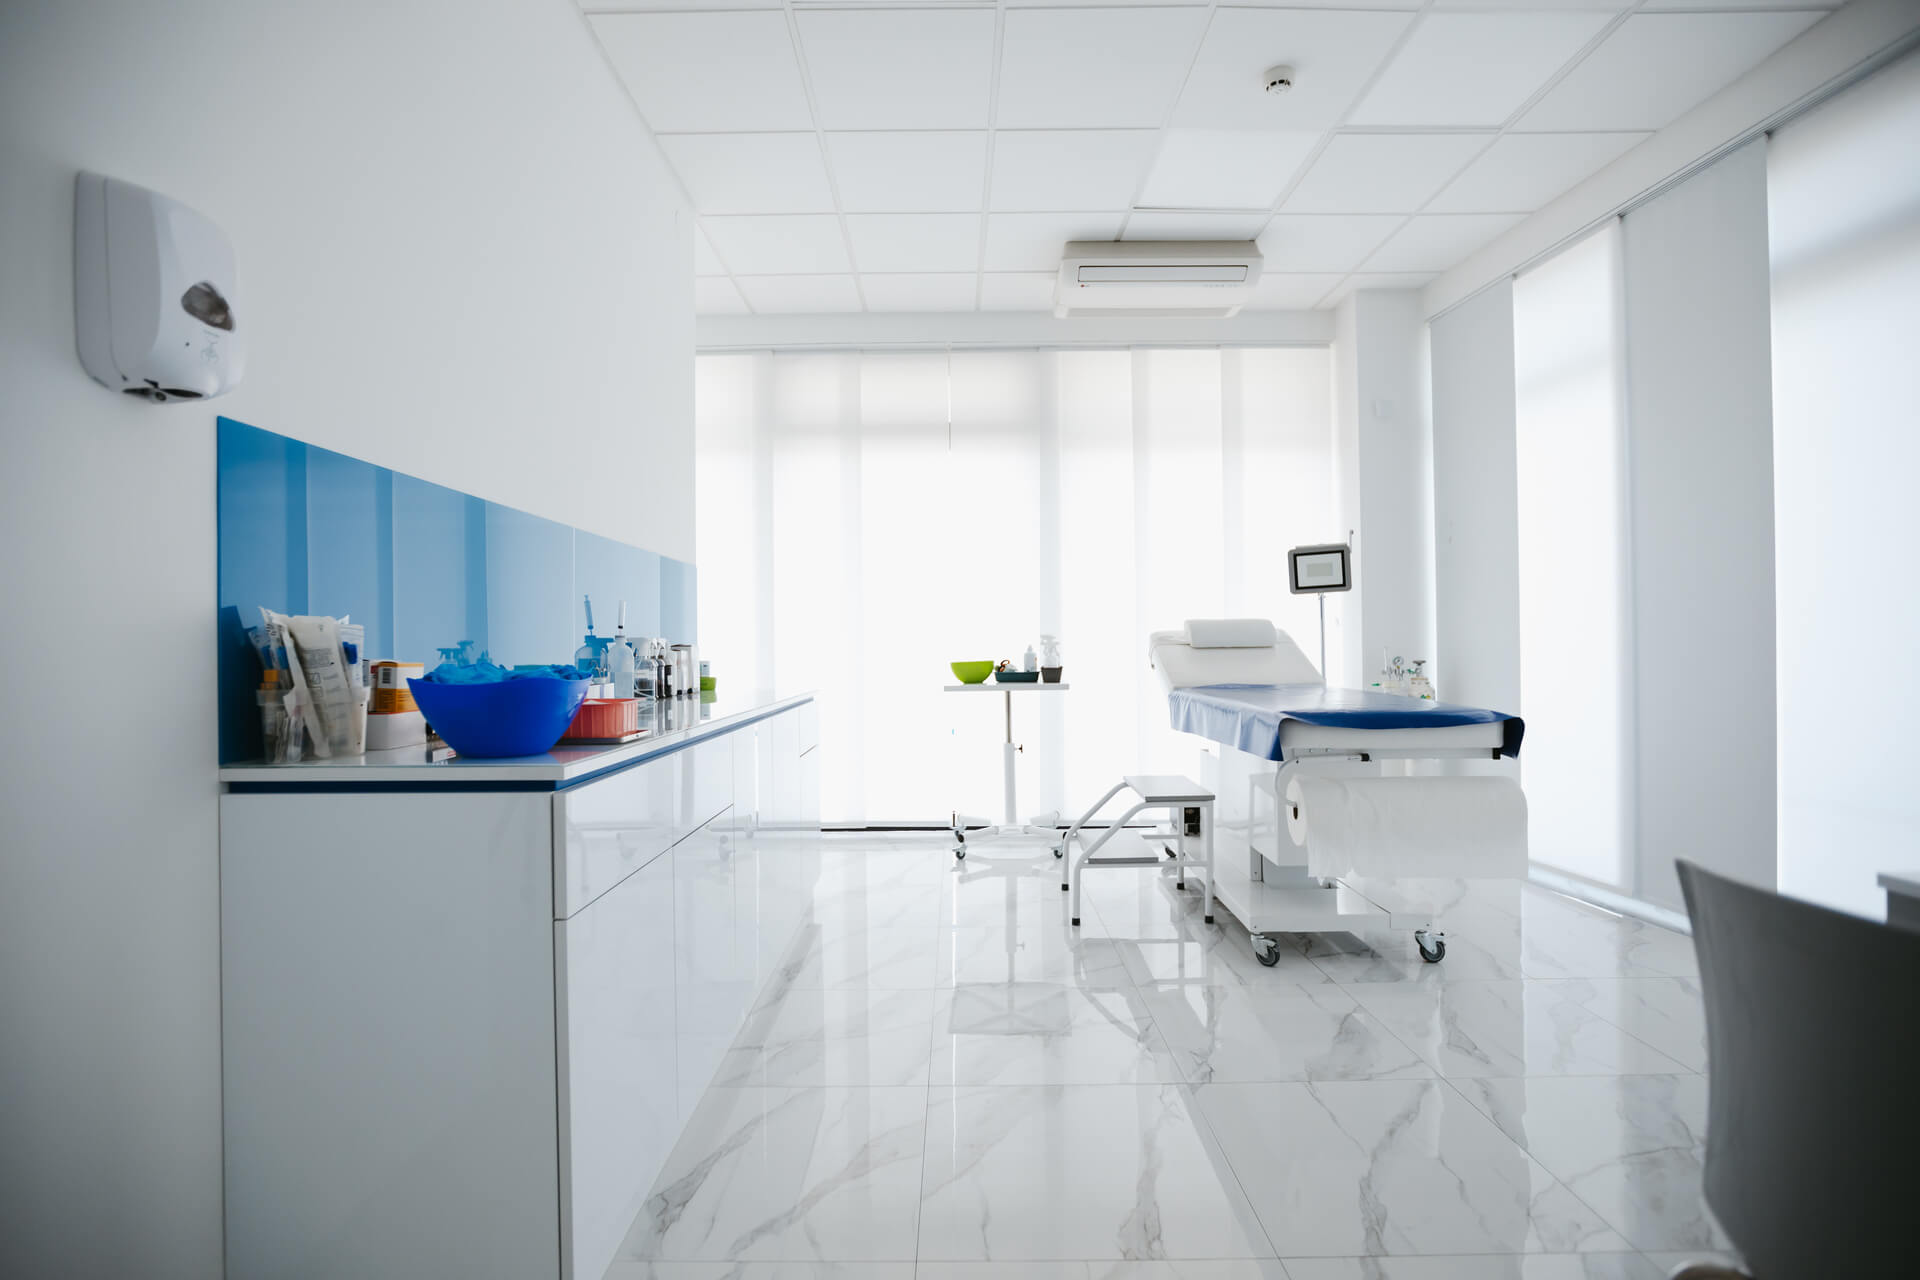 Doctor examination room with examination table.